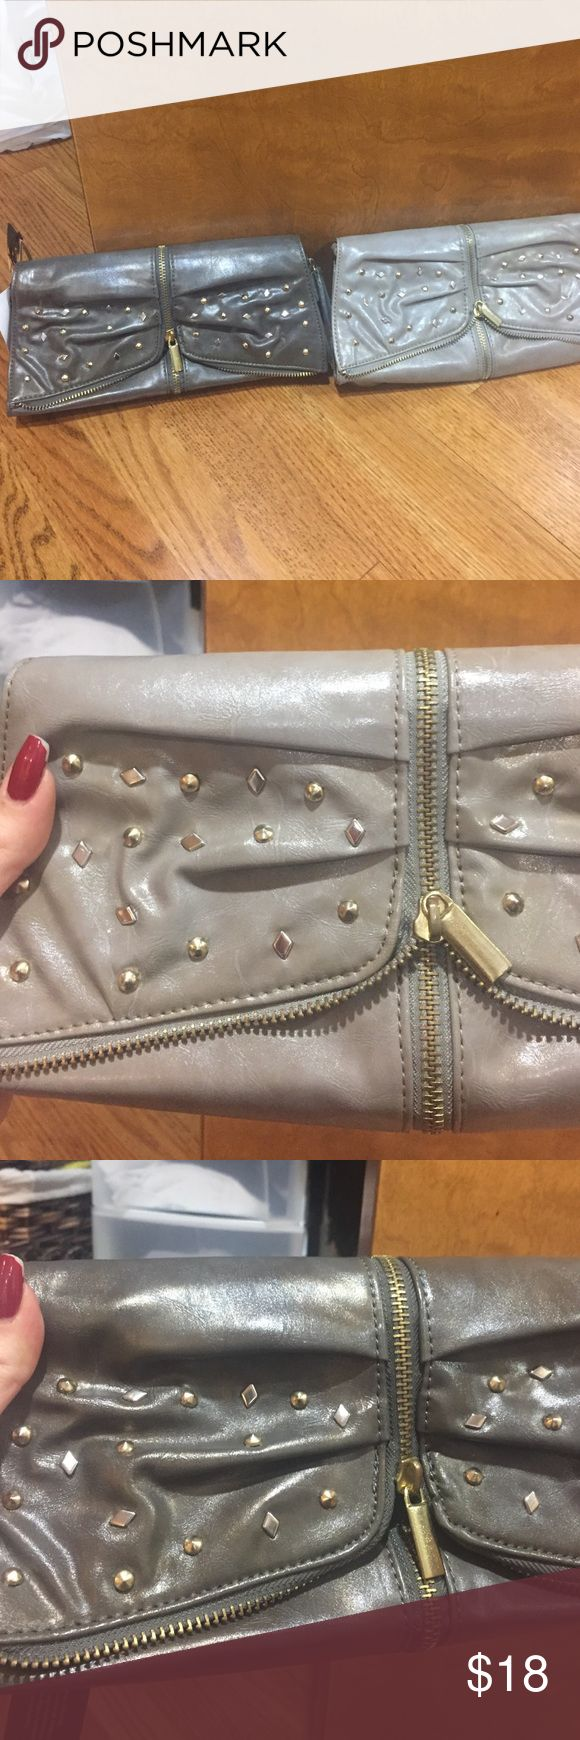 Grey clutches Light and/or dark grey clutches with stud and zipper detail. One for $12/ both for $18 Bags Clutches & Wristlets